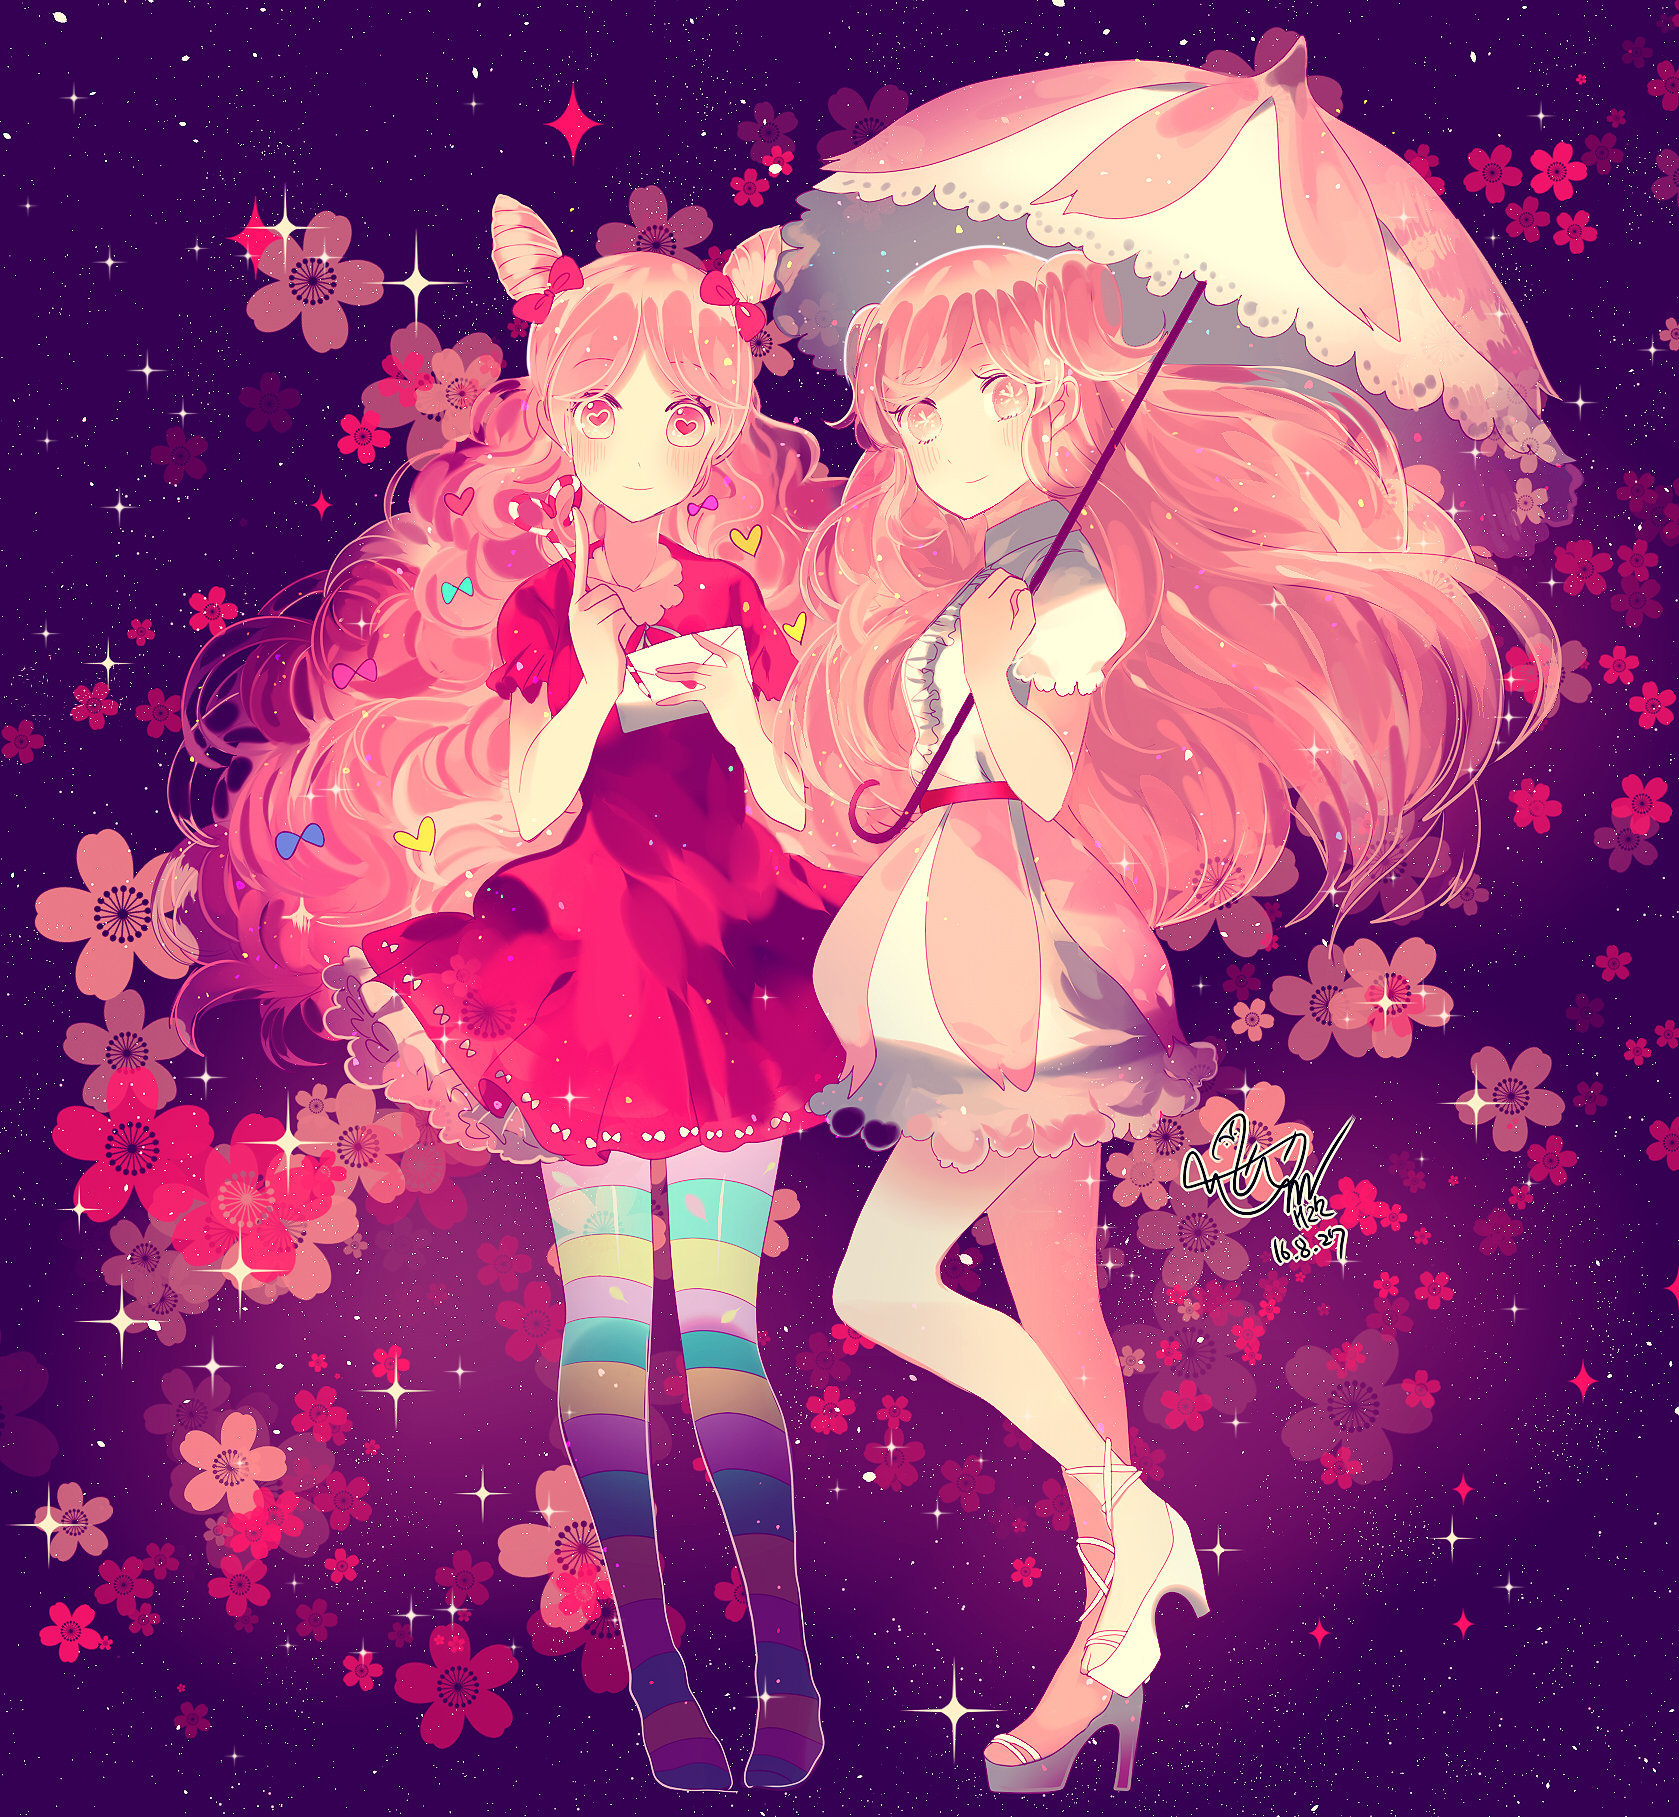 Girl Drawing Wallpaper For Iphone Cotton Candy Cookie Cookie Run Zerochan Anime Image Board